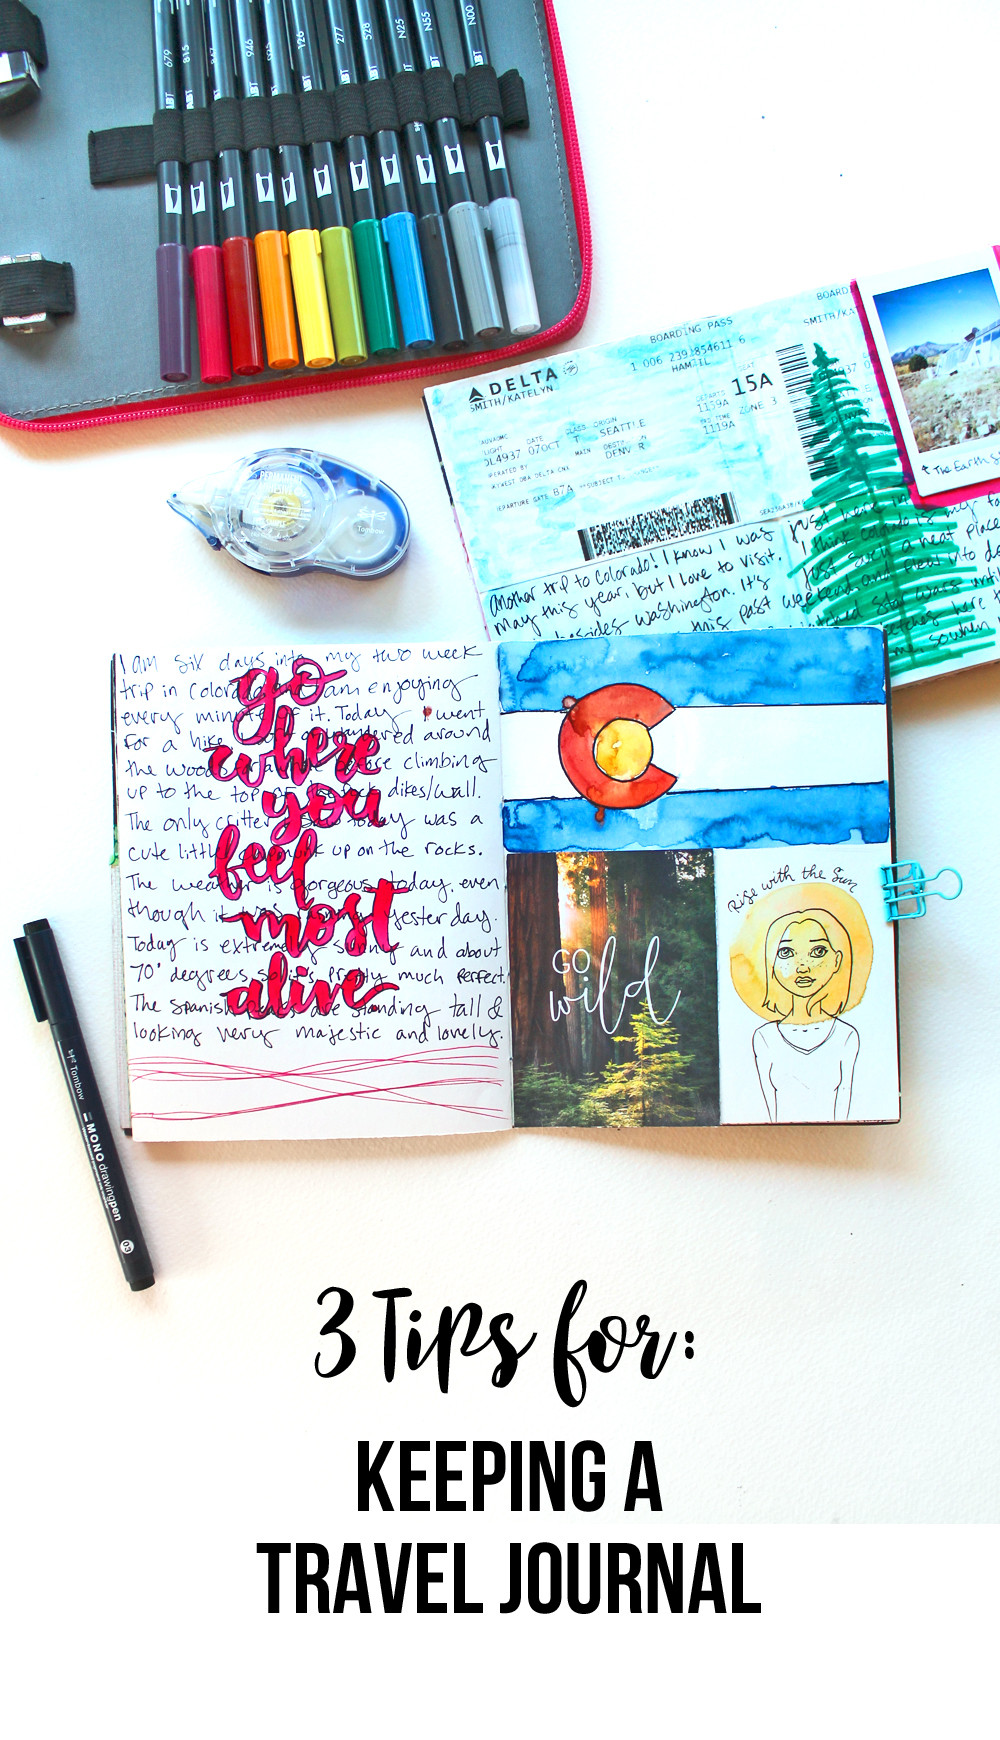 My top 3 tips for keeping a travel journal! by @studio.katie and @tombowusa